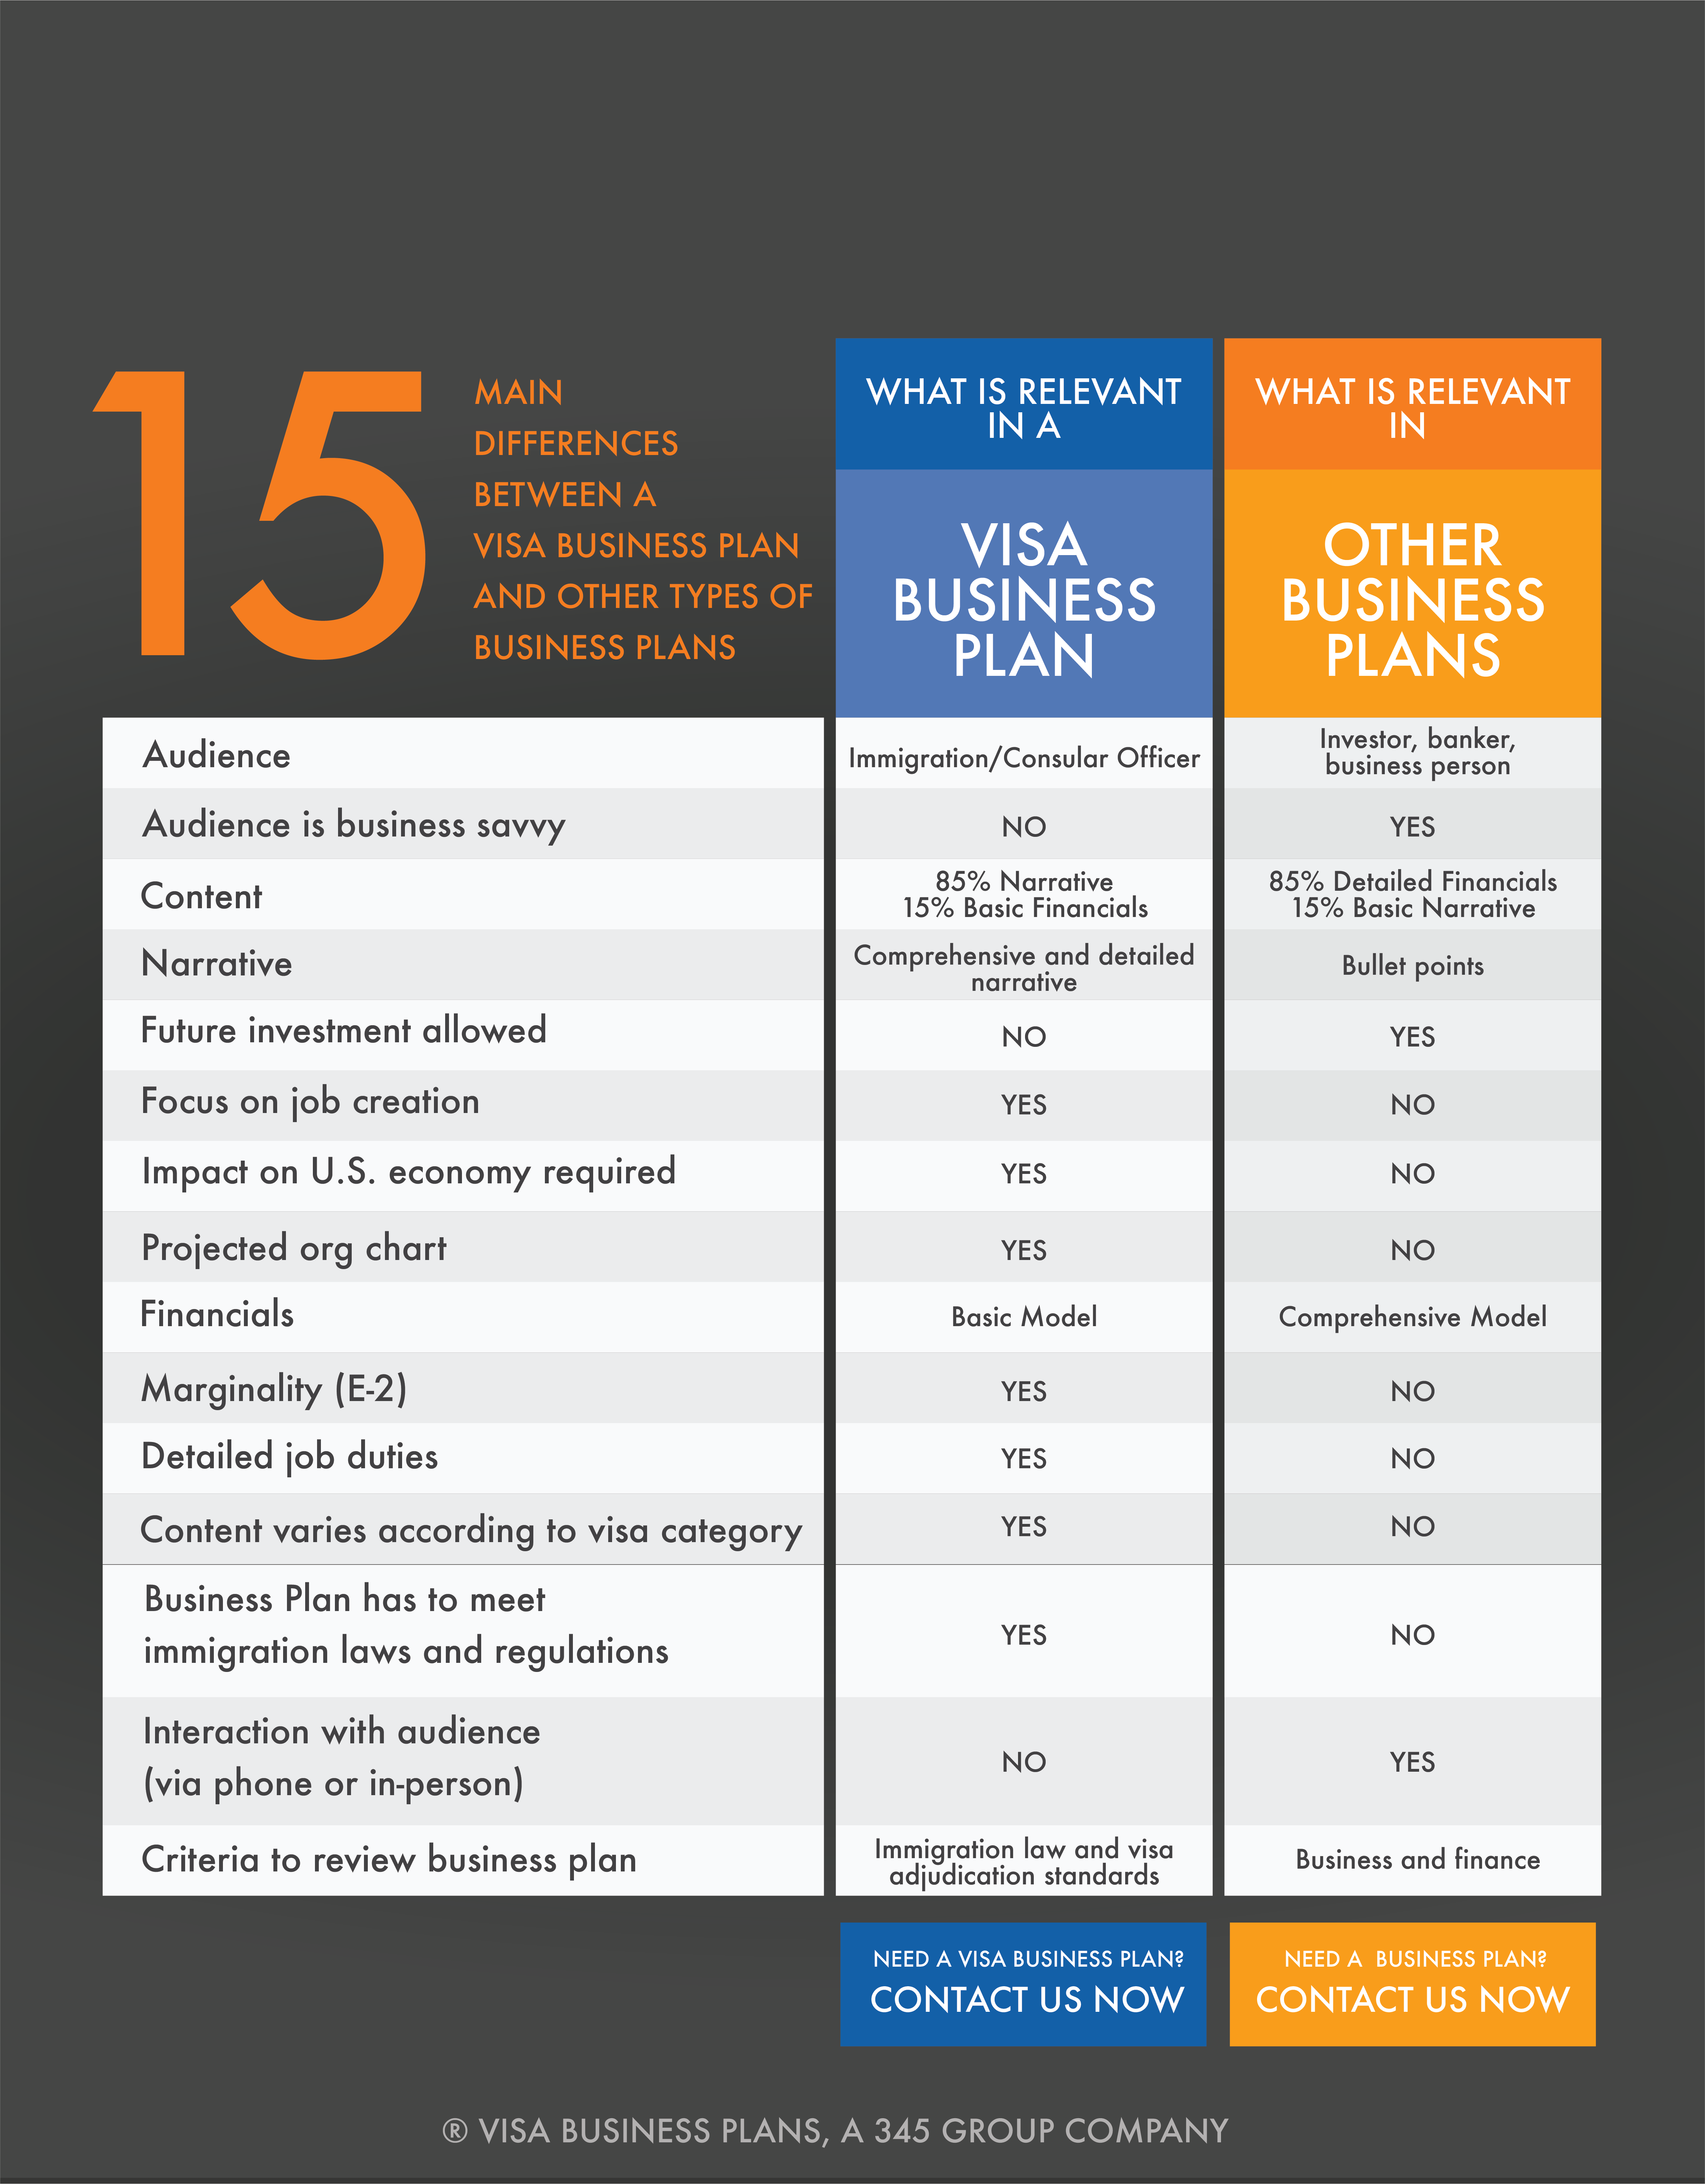 Immigration Business Plan vs. Other Business Plans graphic